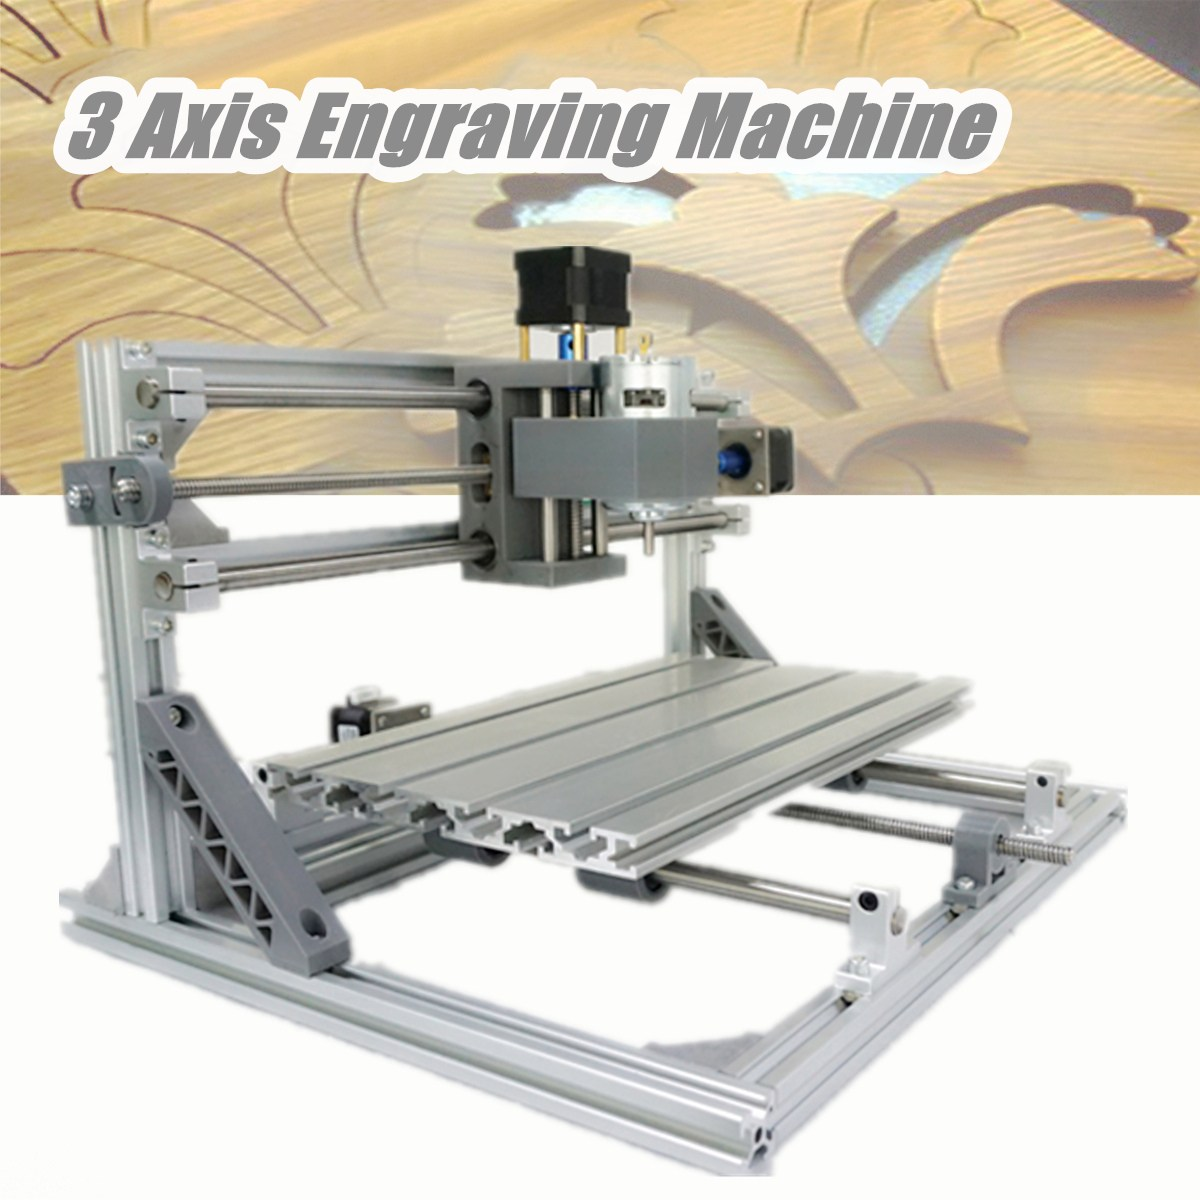 DIY Mini CNC Router Laser Machine 3 Axis 3018 ER11 GRBL Control Pcb Pvc Milling Wood Router Wood Router Laser Engraving 2020 cnc router pcb milling machine arduino cnc diy wood carving engraving machine pvc engraver grbl wood router fit er11 15w